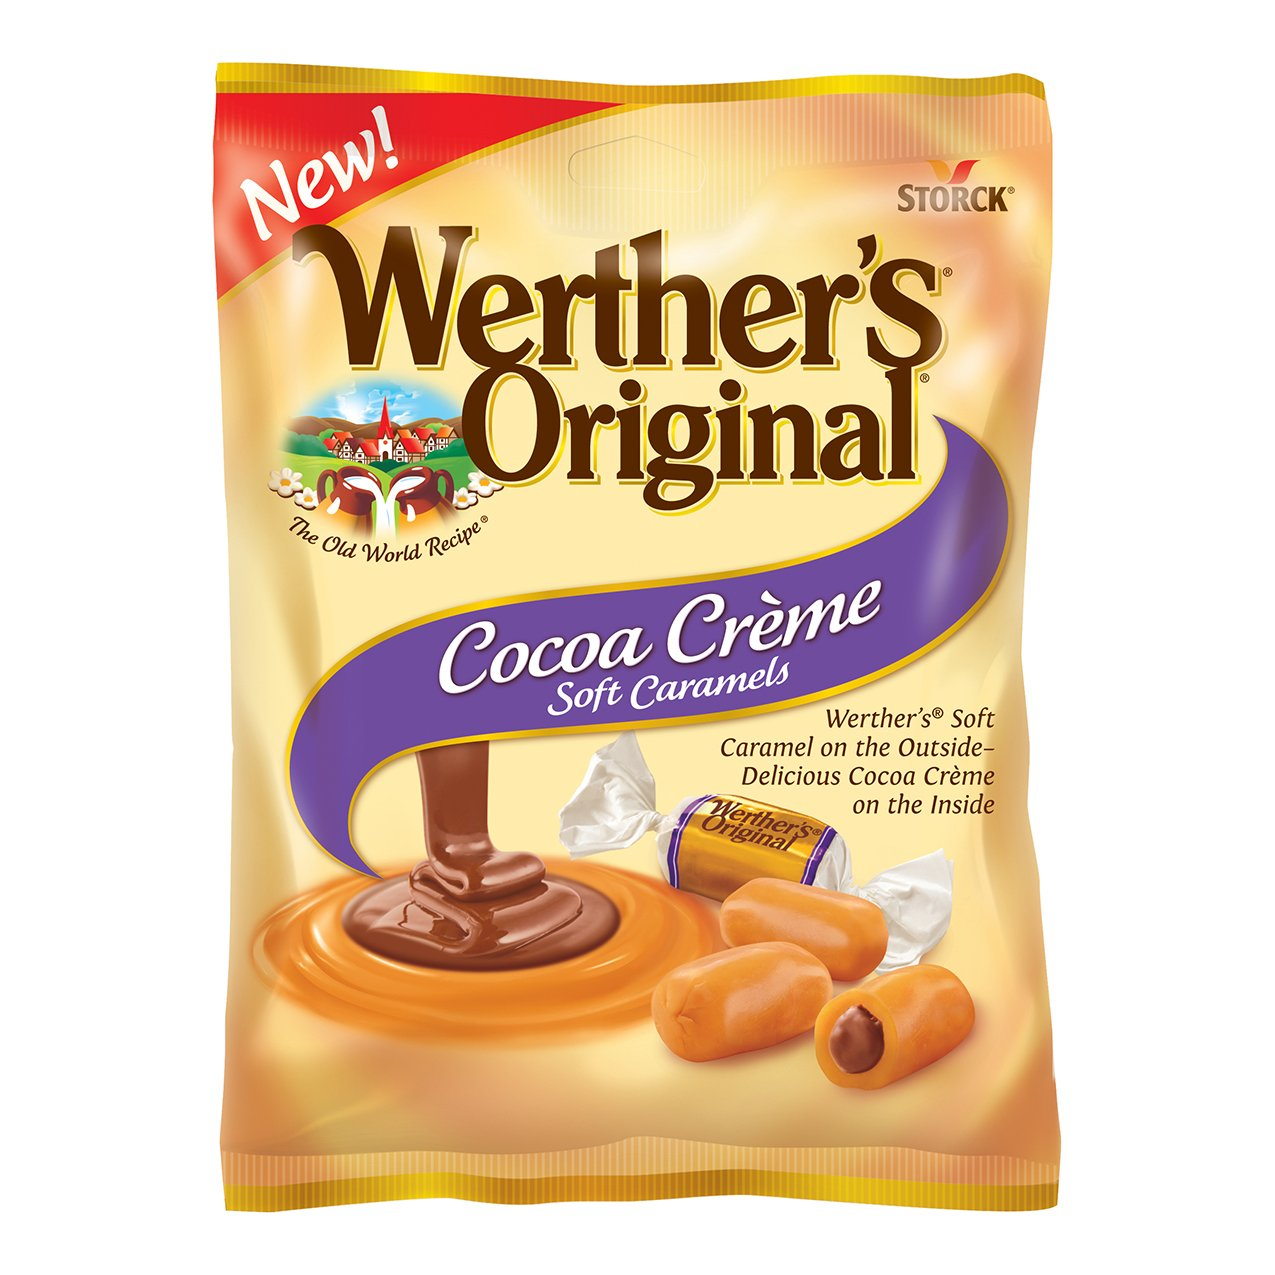 WERTHER'S ORIGINAL Cocoa Crème Soft Caramels, Individually Wrapped Candy, 4.51 Ounce Bag (Pack of 12)